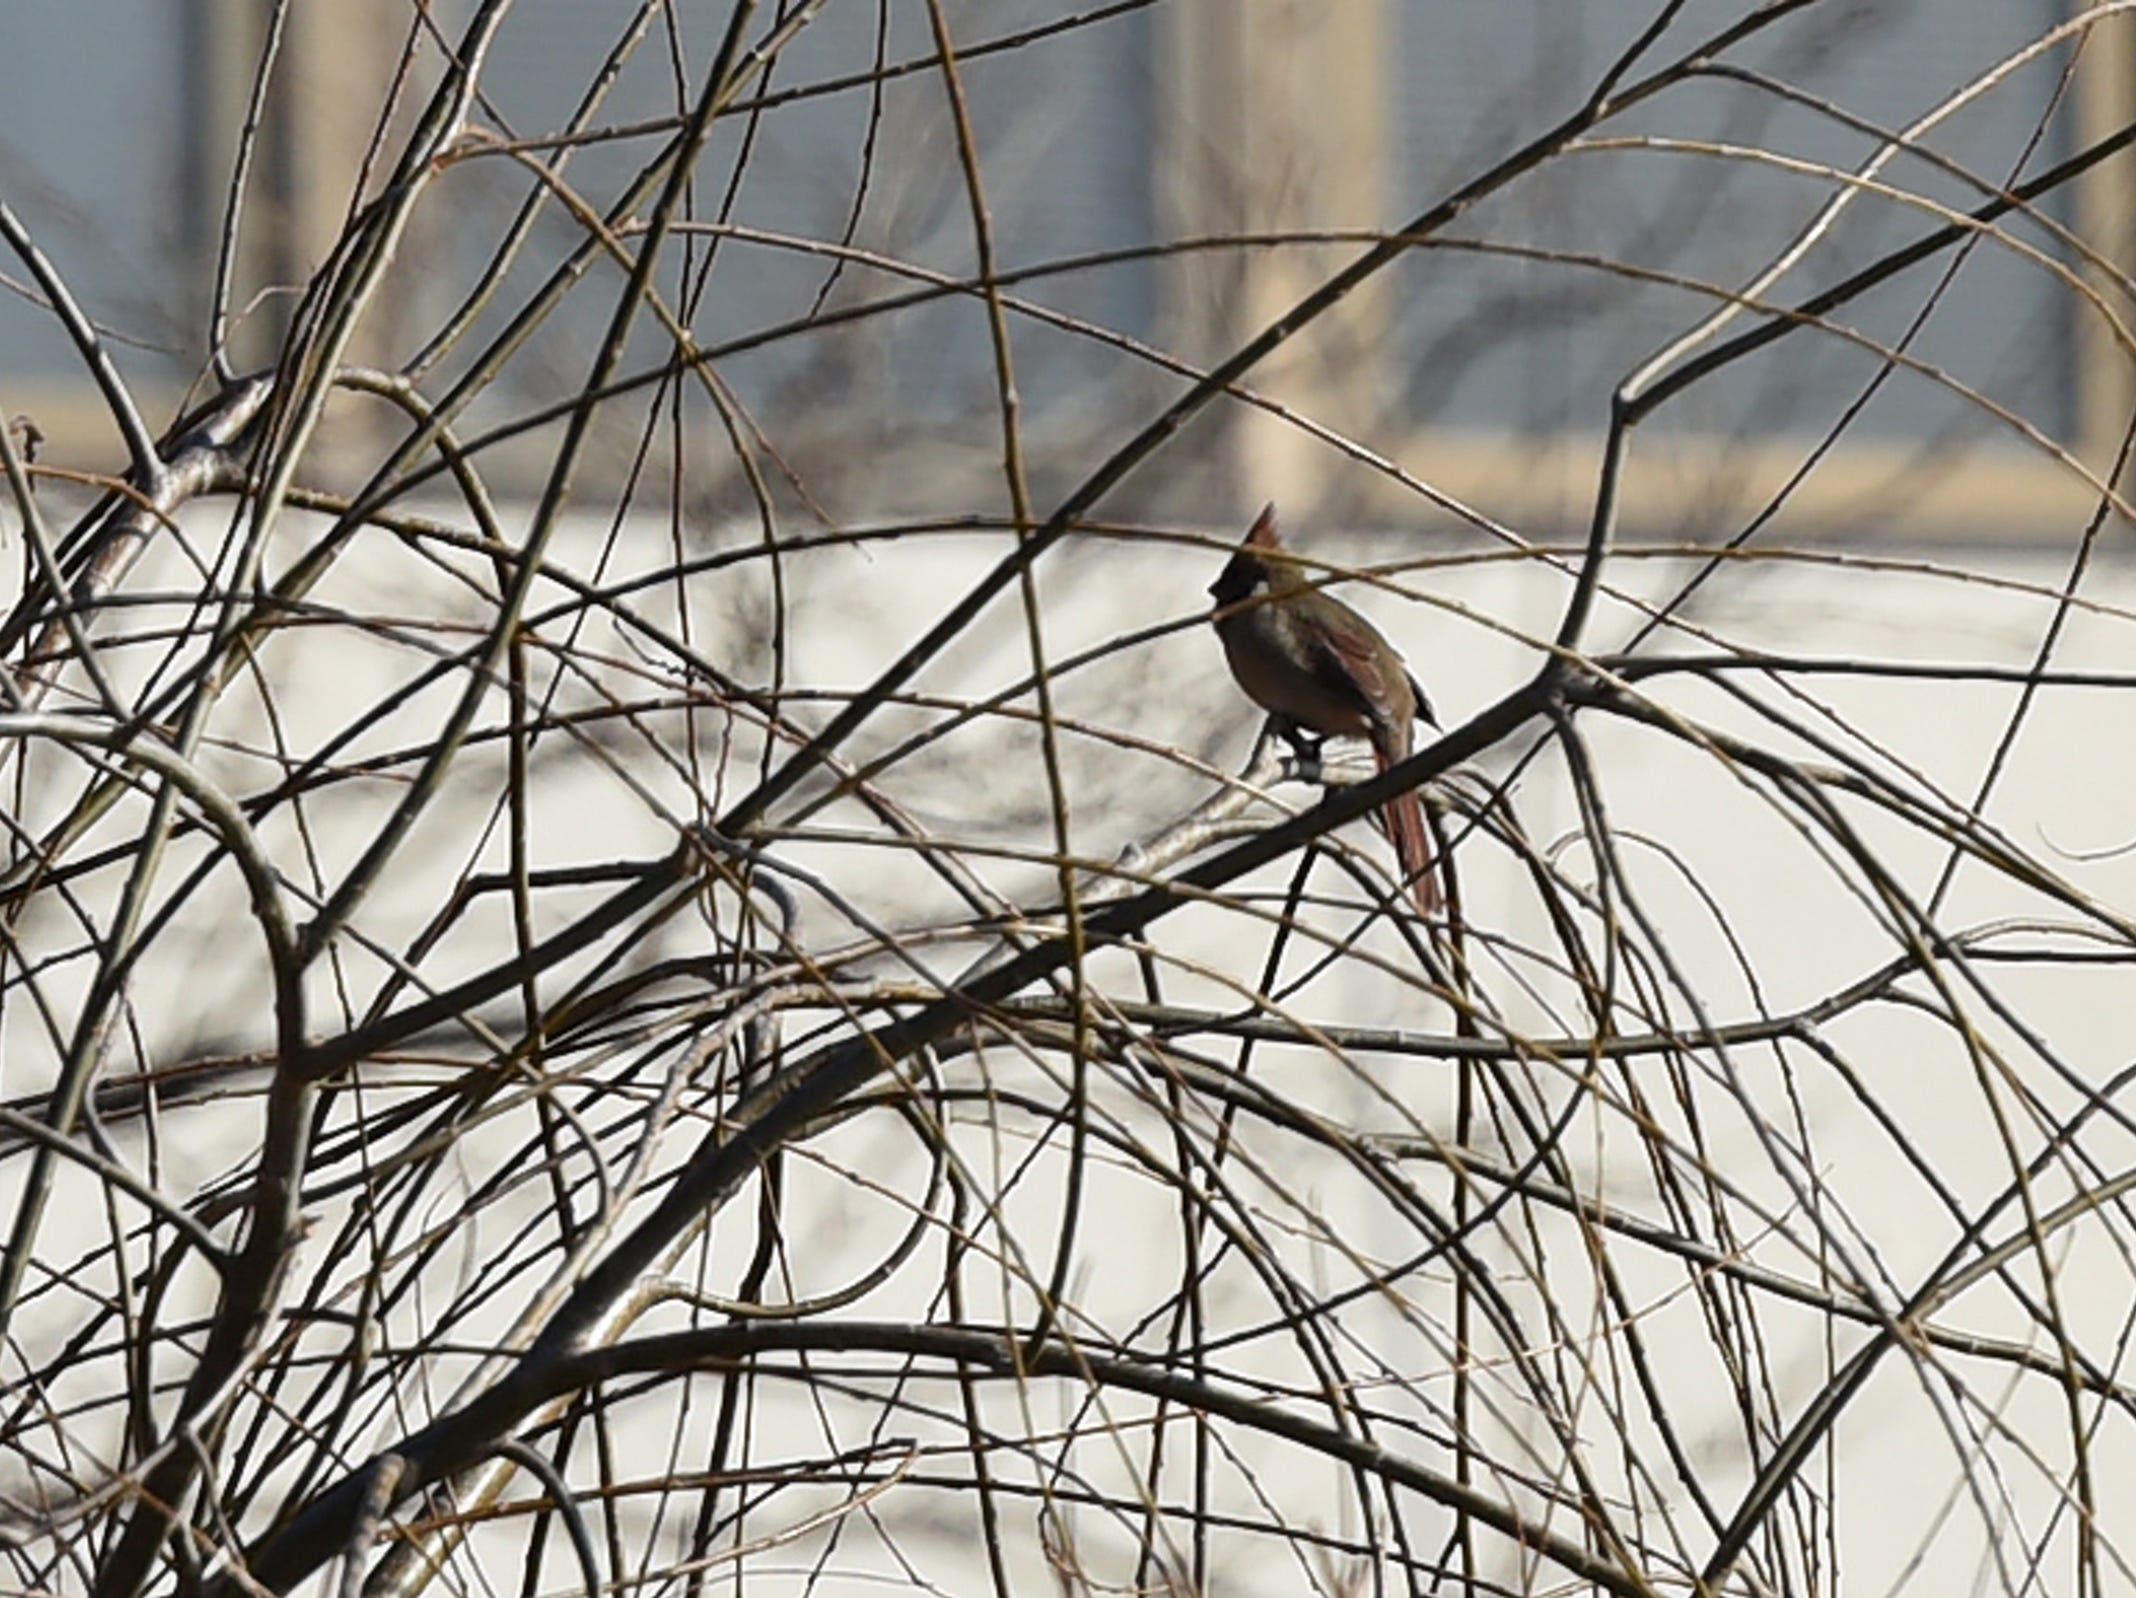 A male cardinal was spotted by birders during The Bergen County Audubon Society wintering birds and nature walk at Dekorte Park in Lyndhurst on Sunday, February 3, 2019. Prizes were awarded to the first people to spot birds that are also NFL team names.